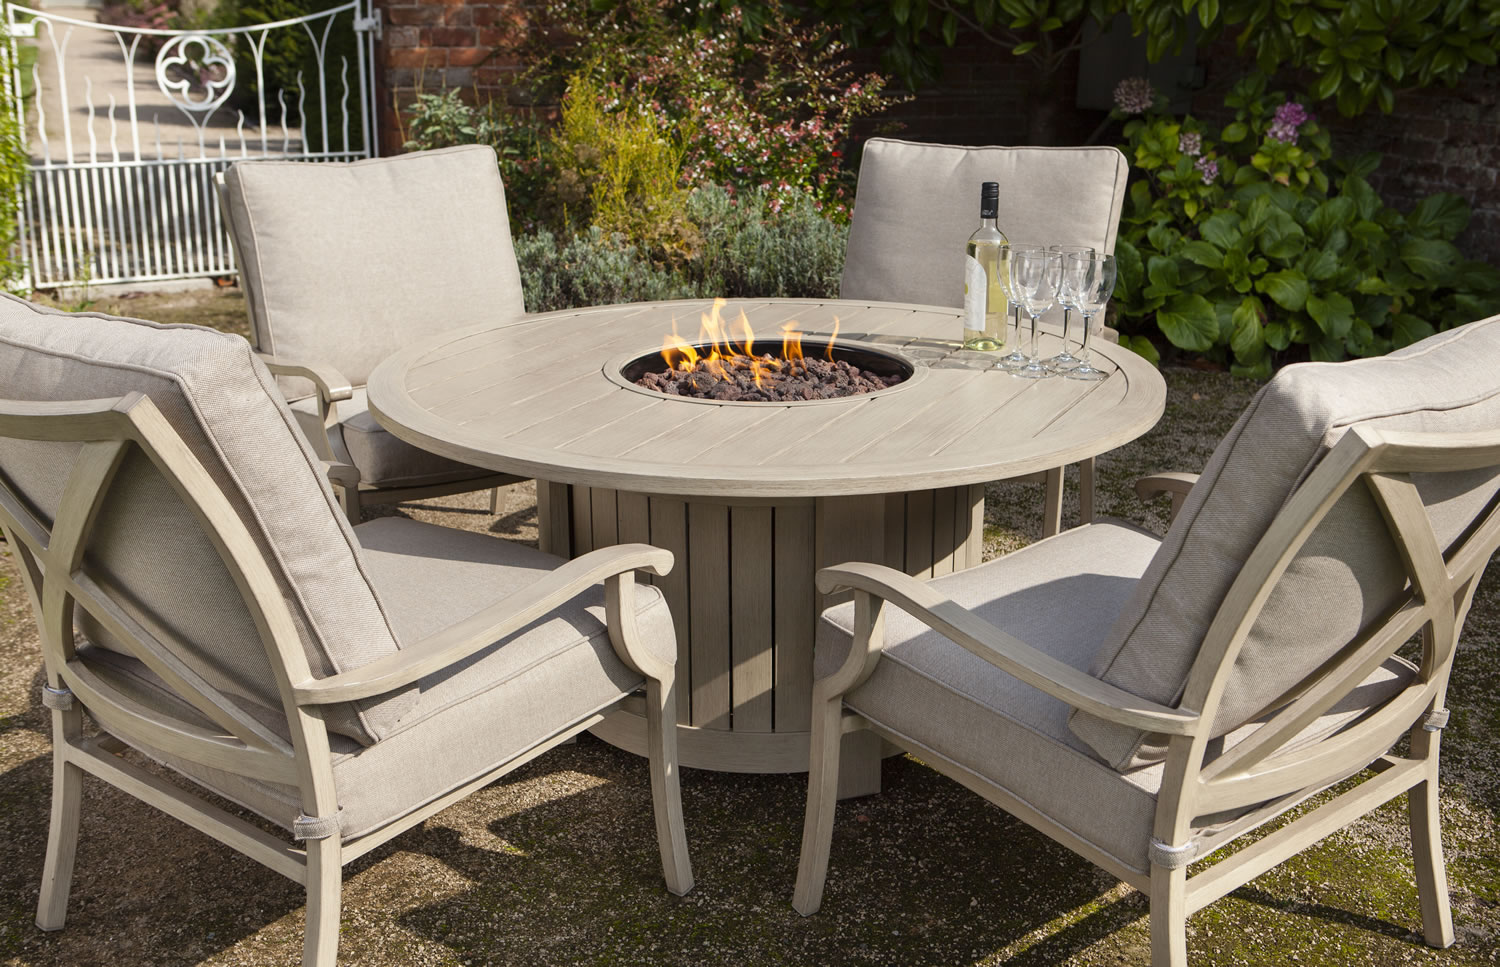 Portland Round 4 Seater Lounge Set with Fire Pit £1439